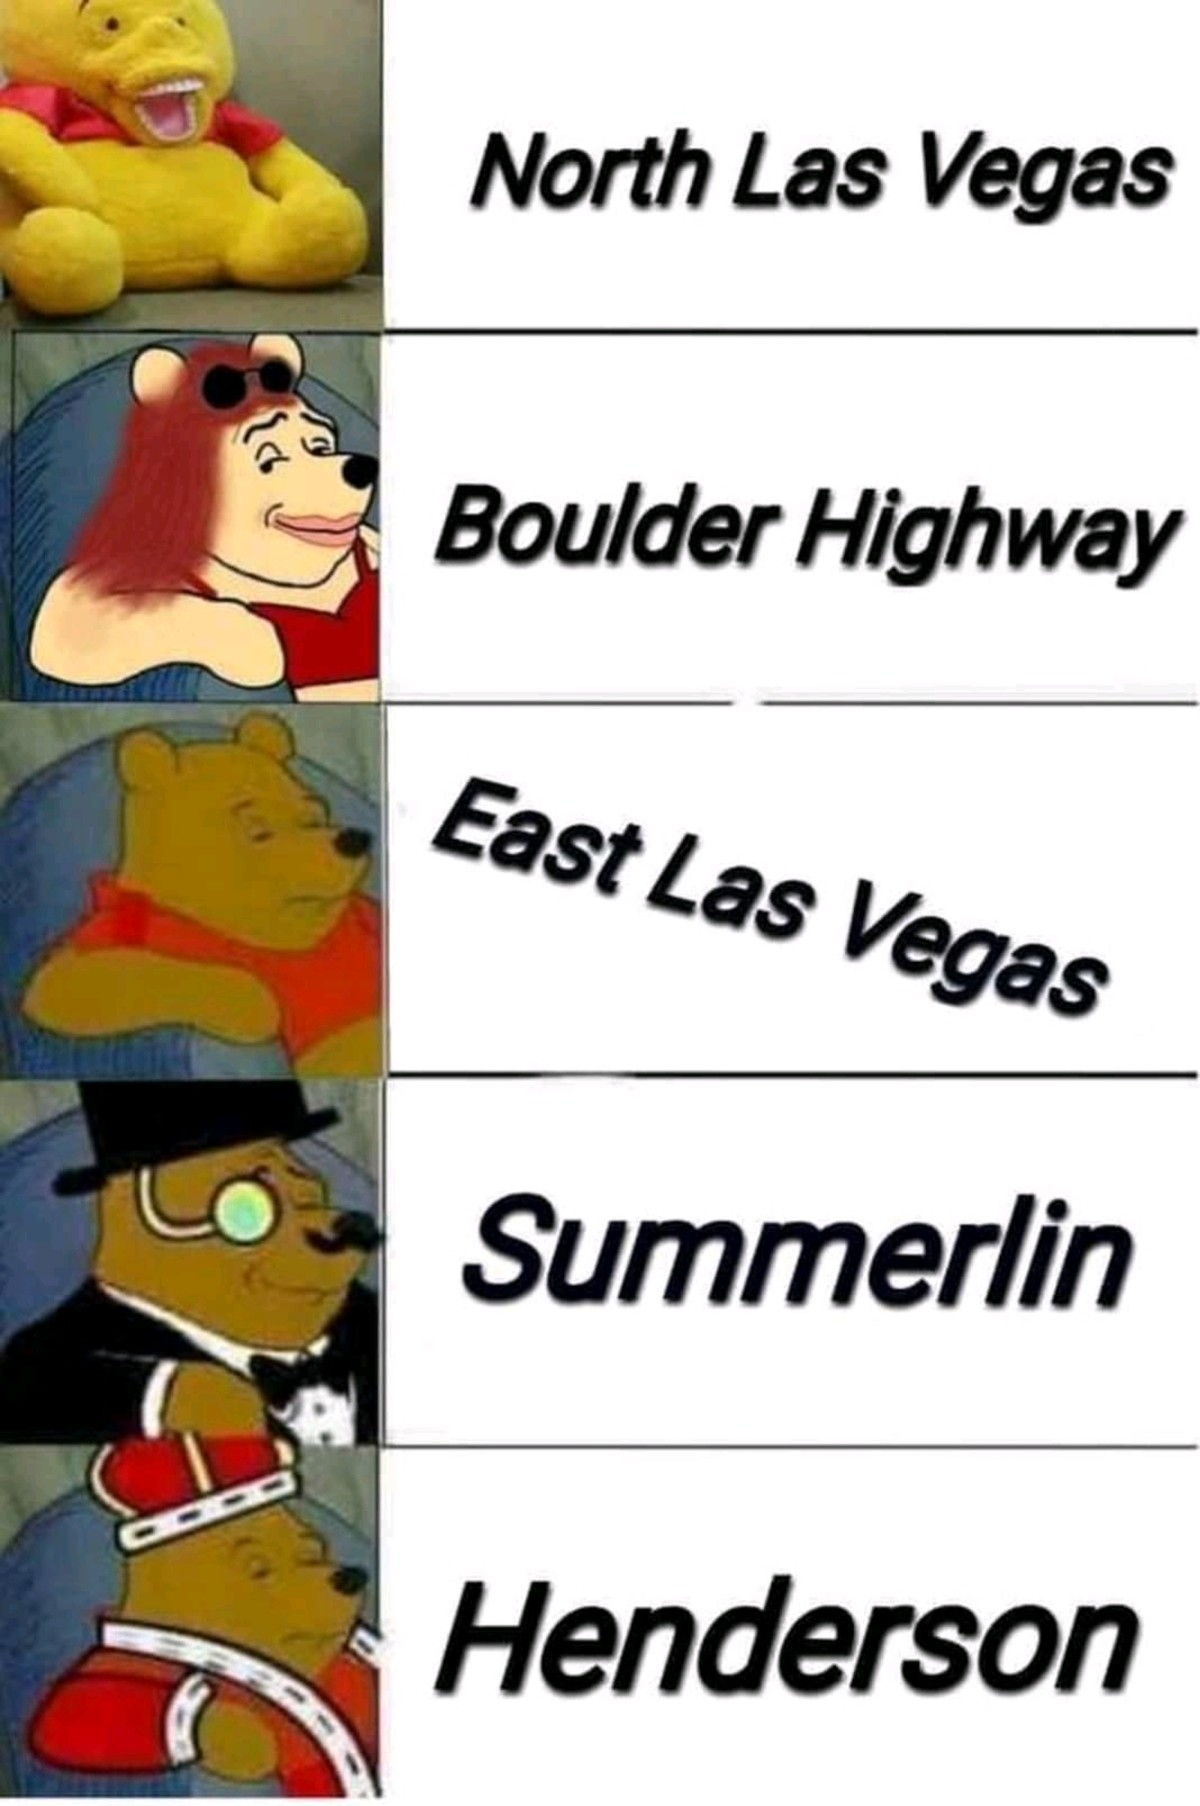 Vegas meme 2. I personally live in east las vegas.. It's not wrong